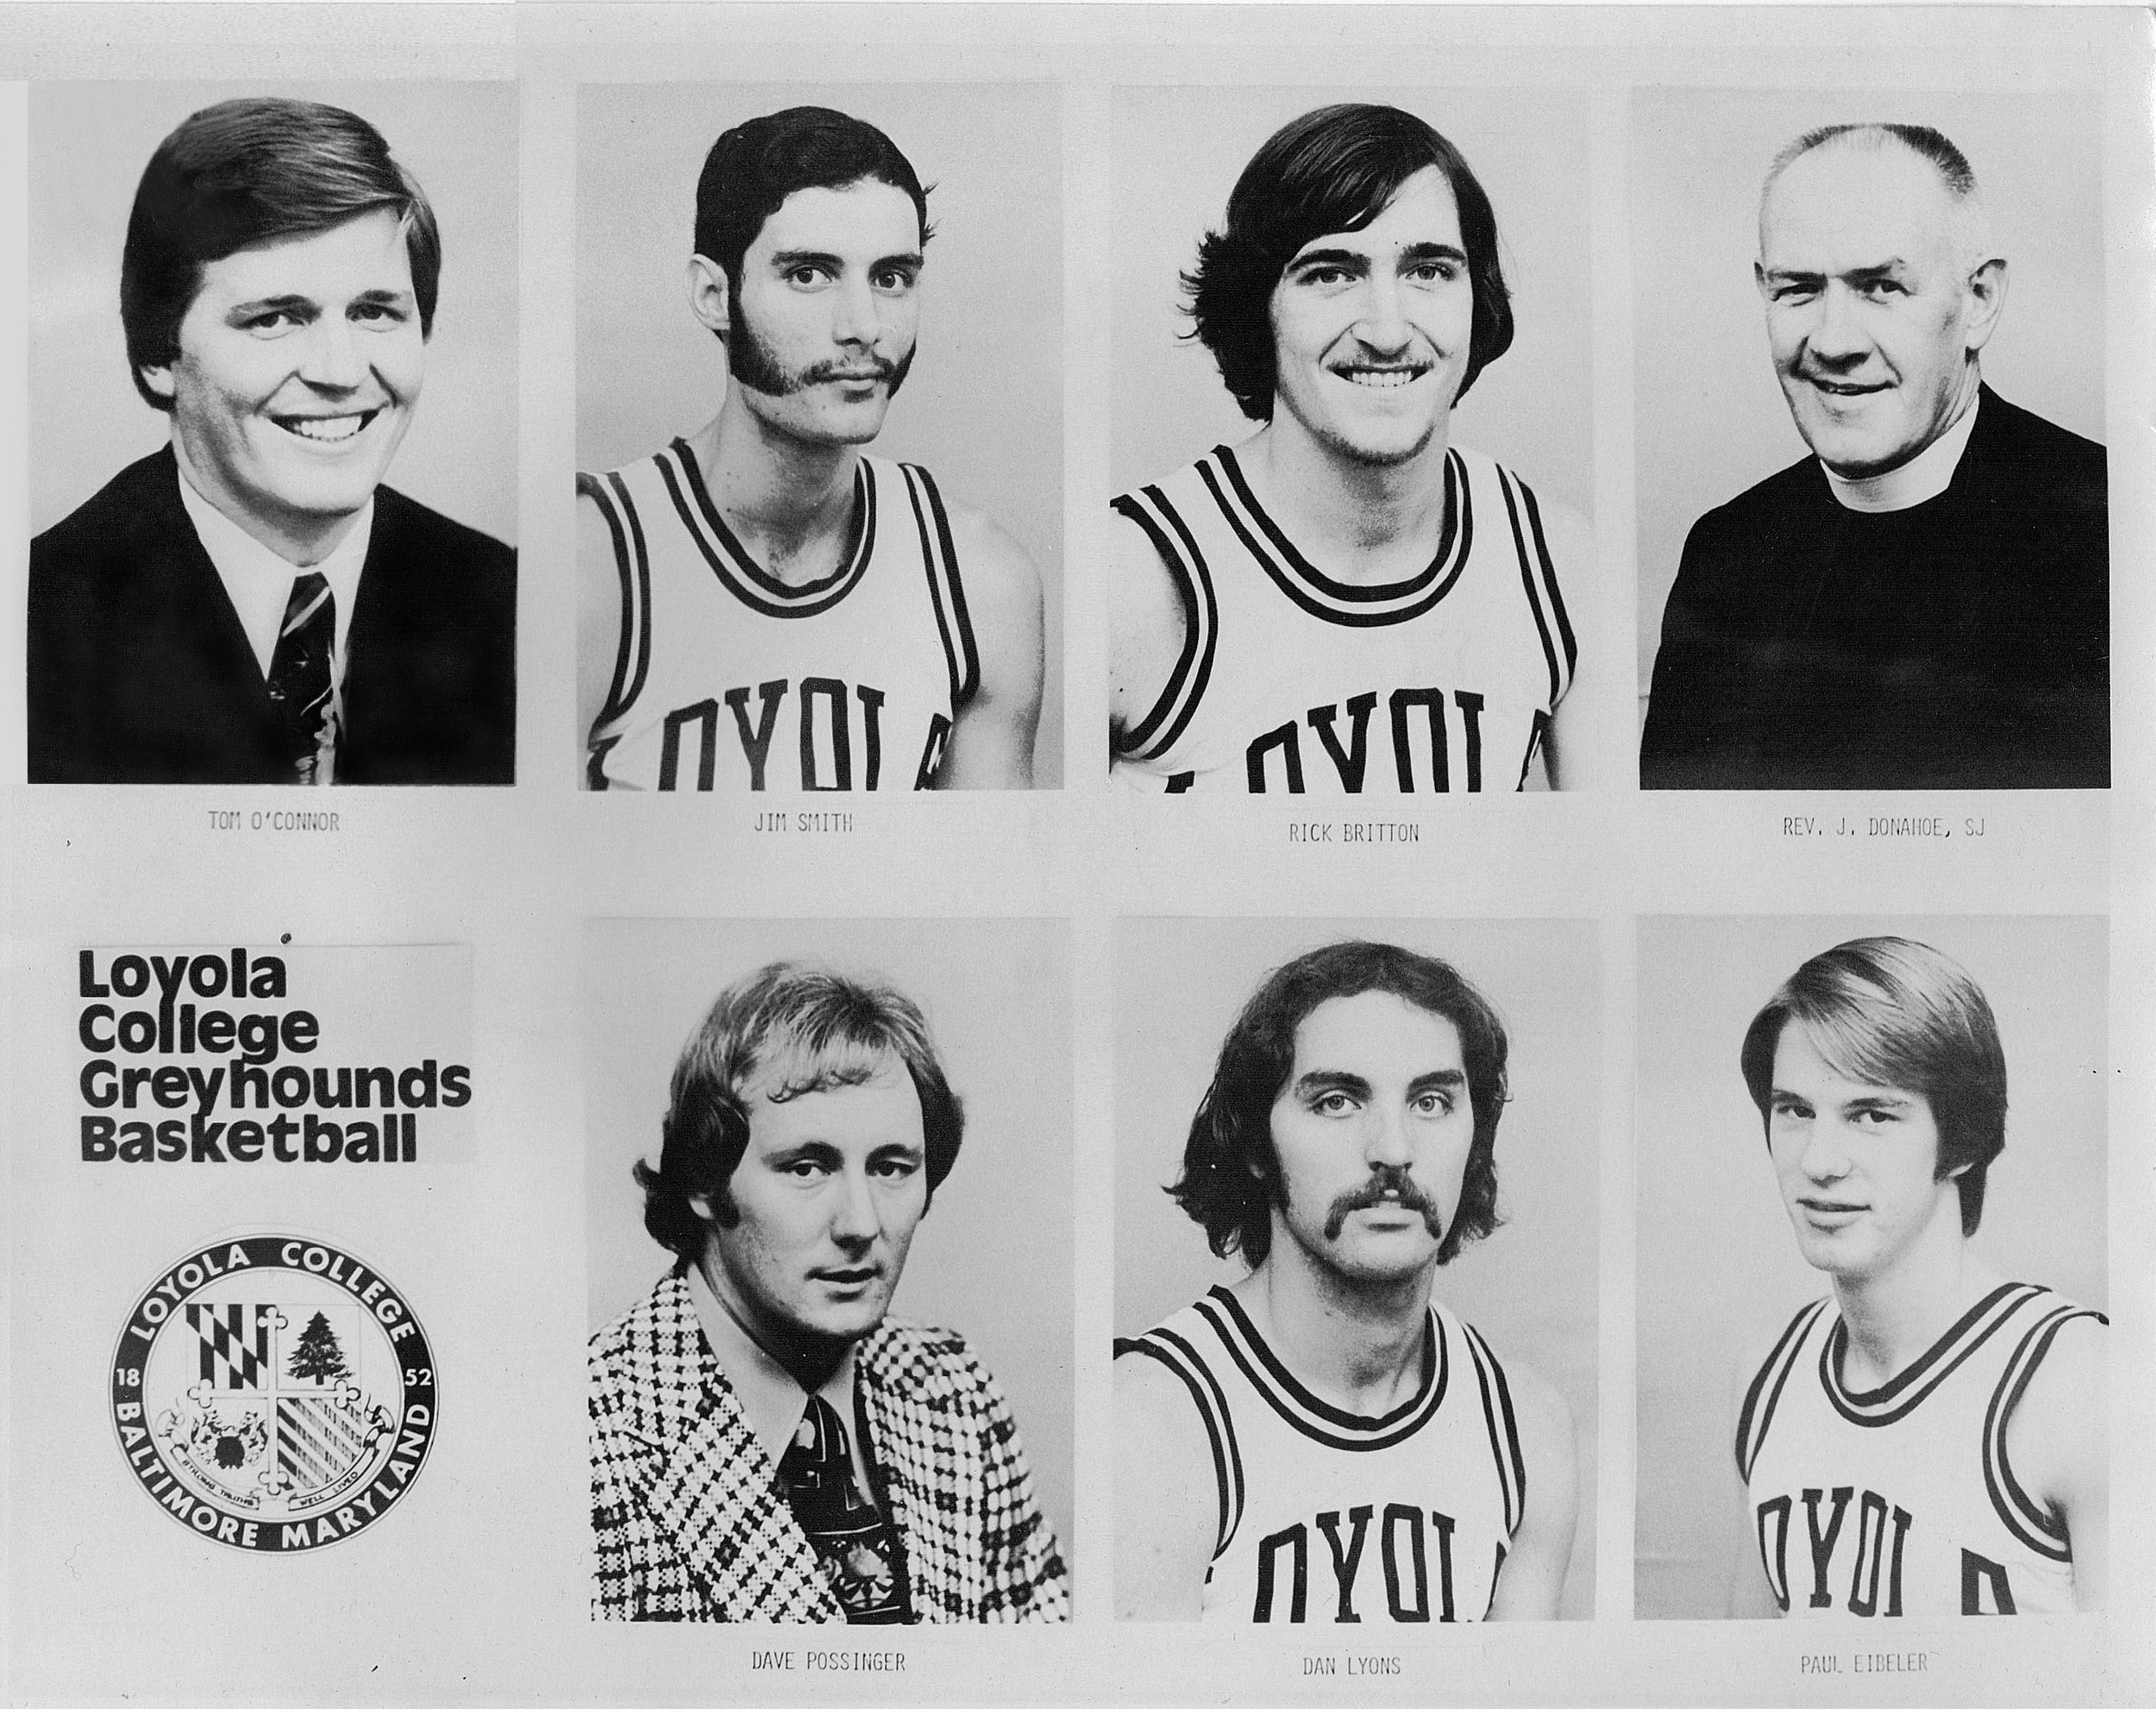 Loyola College in Maryland 1975-76 Men's Basketball Team (Photo by Jimmy Smith)